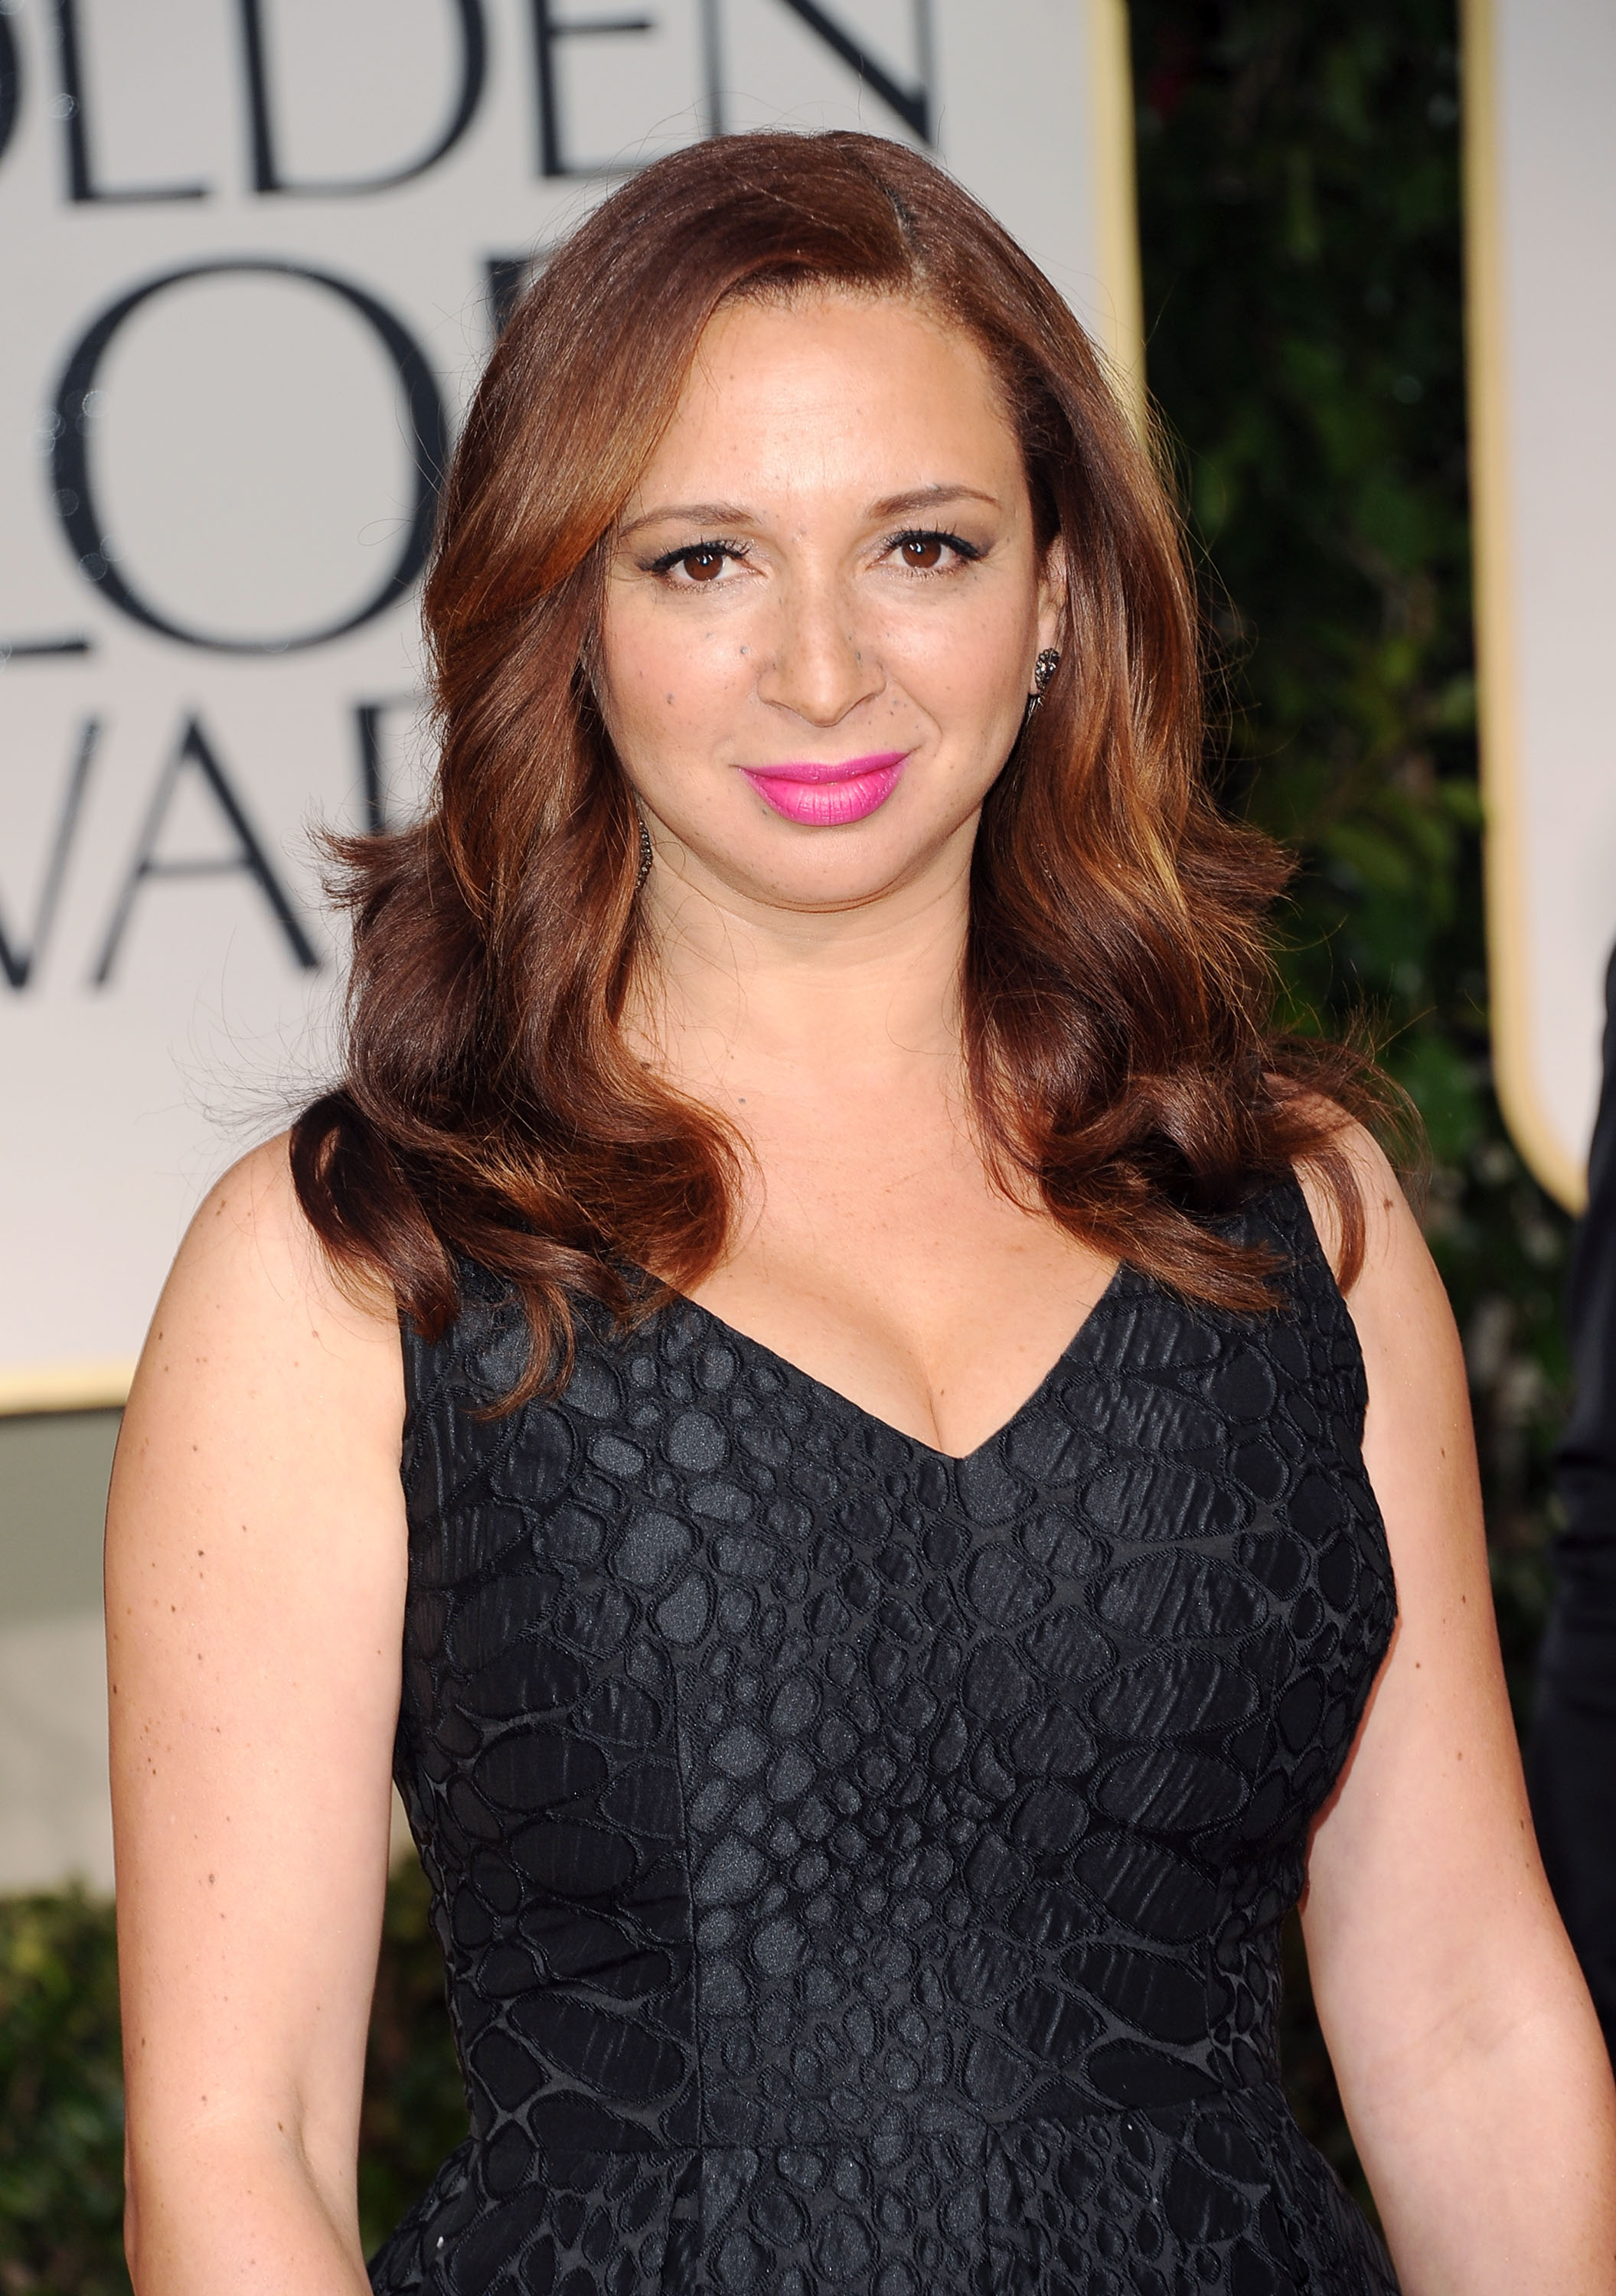 Maya Rudolph earned a  million dollar salary, leaving the net worth at 4 million in 2017